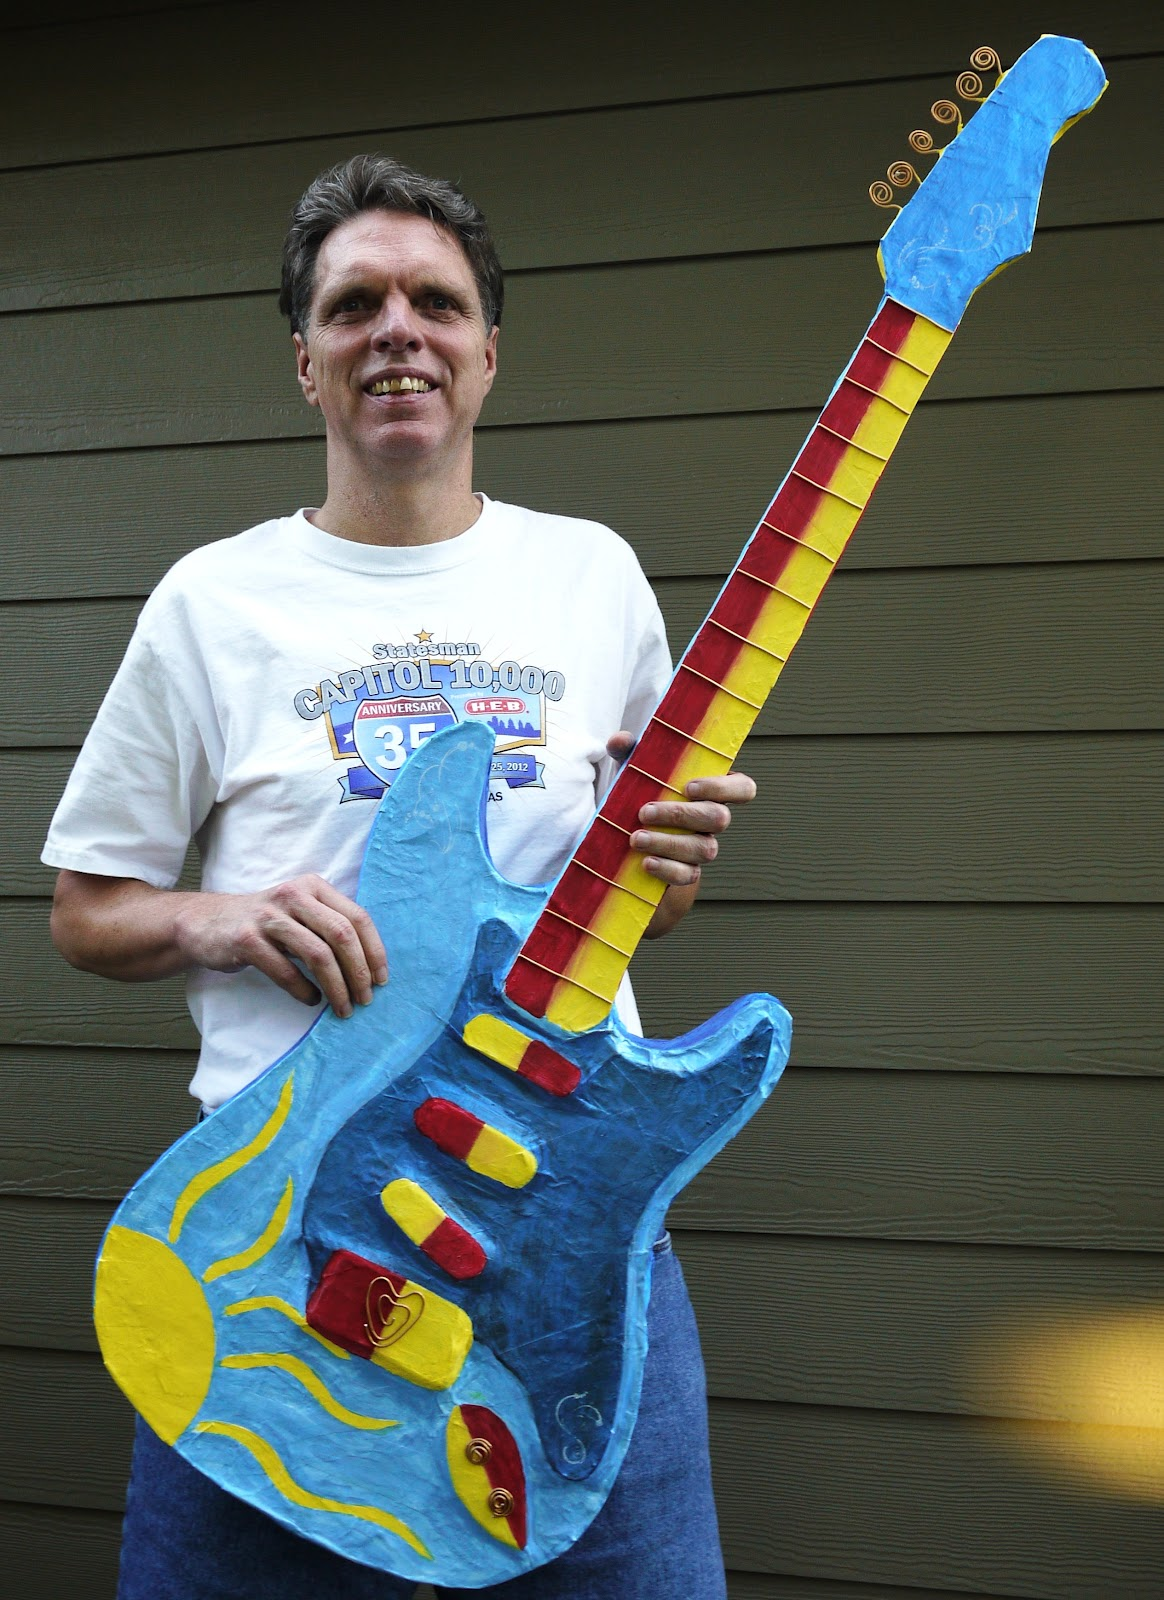 I used the copper wire for frets and knobs on the Jack plate. Then I sprayed it all with the clear glaze. Voila! The Ultimate Paper Mache Guitar!  sc 1 st  Tom Hokanson & The Ultimate Paper Mache Guitar | Tom Hokanson